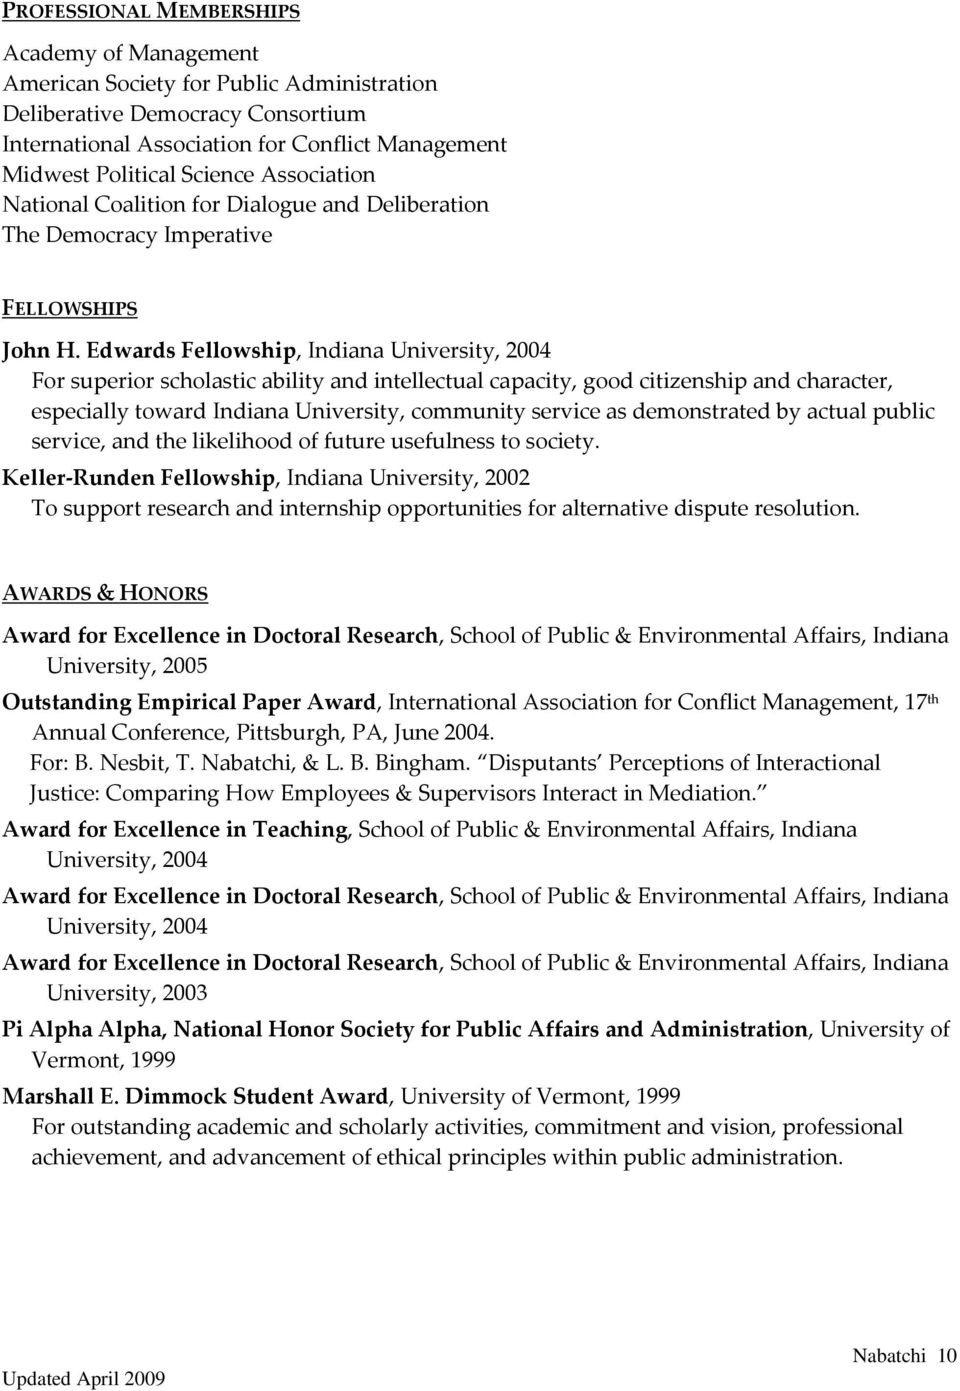 Edwards Fellowship, Indiana University, 2004 For superior scholastic ability and intellectual capacity, good citizenship and character, especially toward Indiana University, community service as